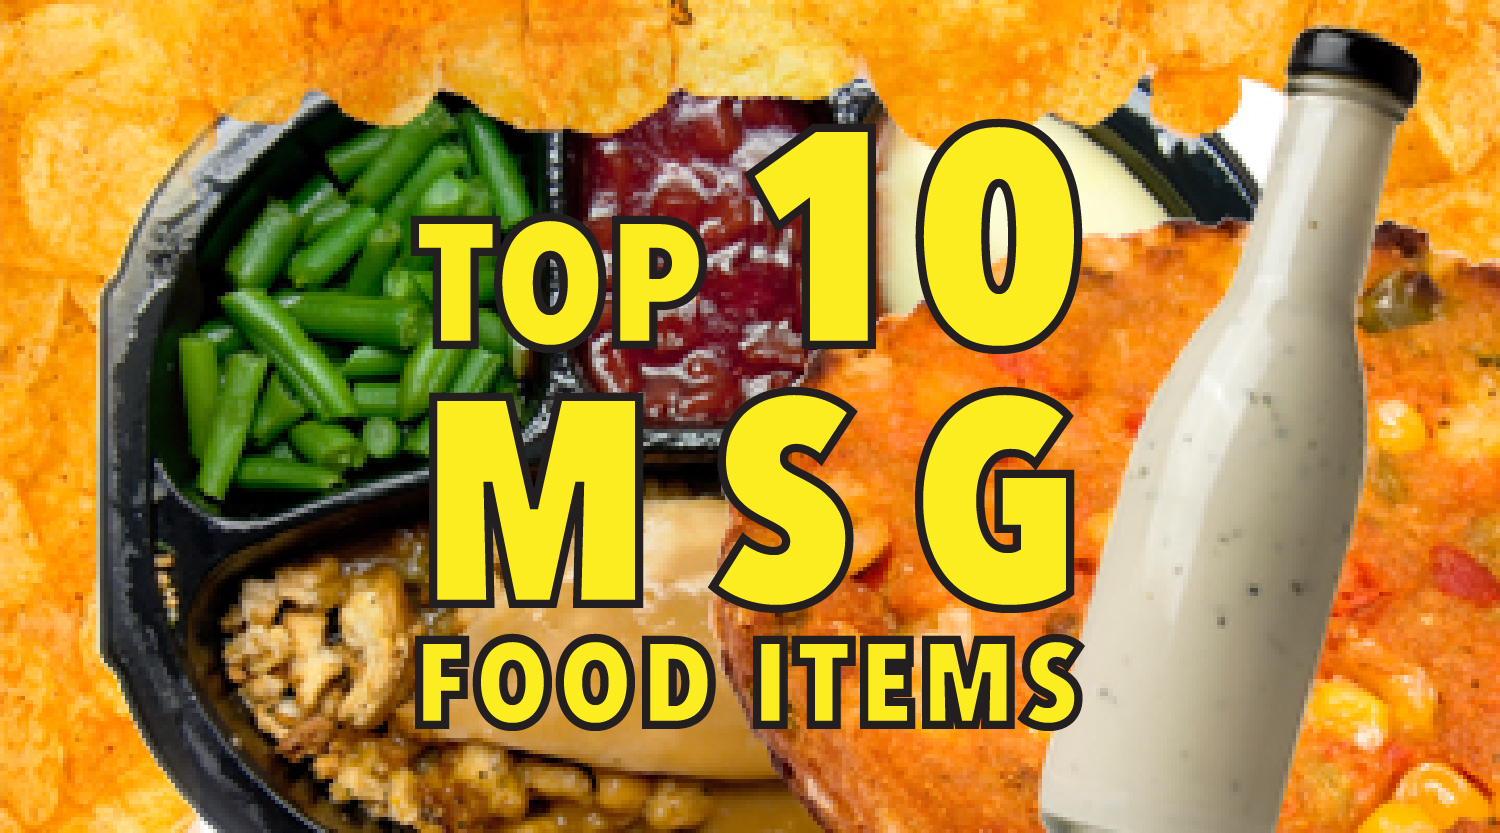 List Of Food Items That Contain Msg